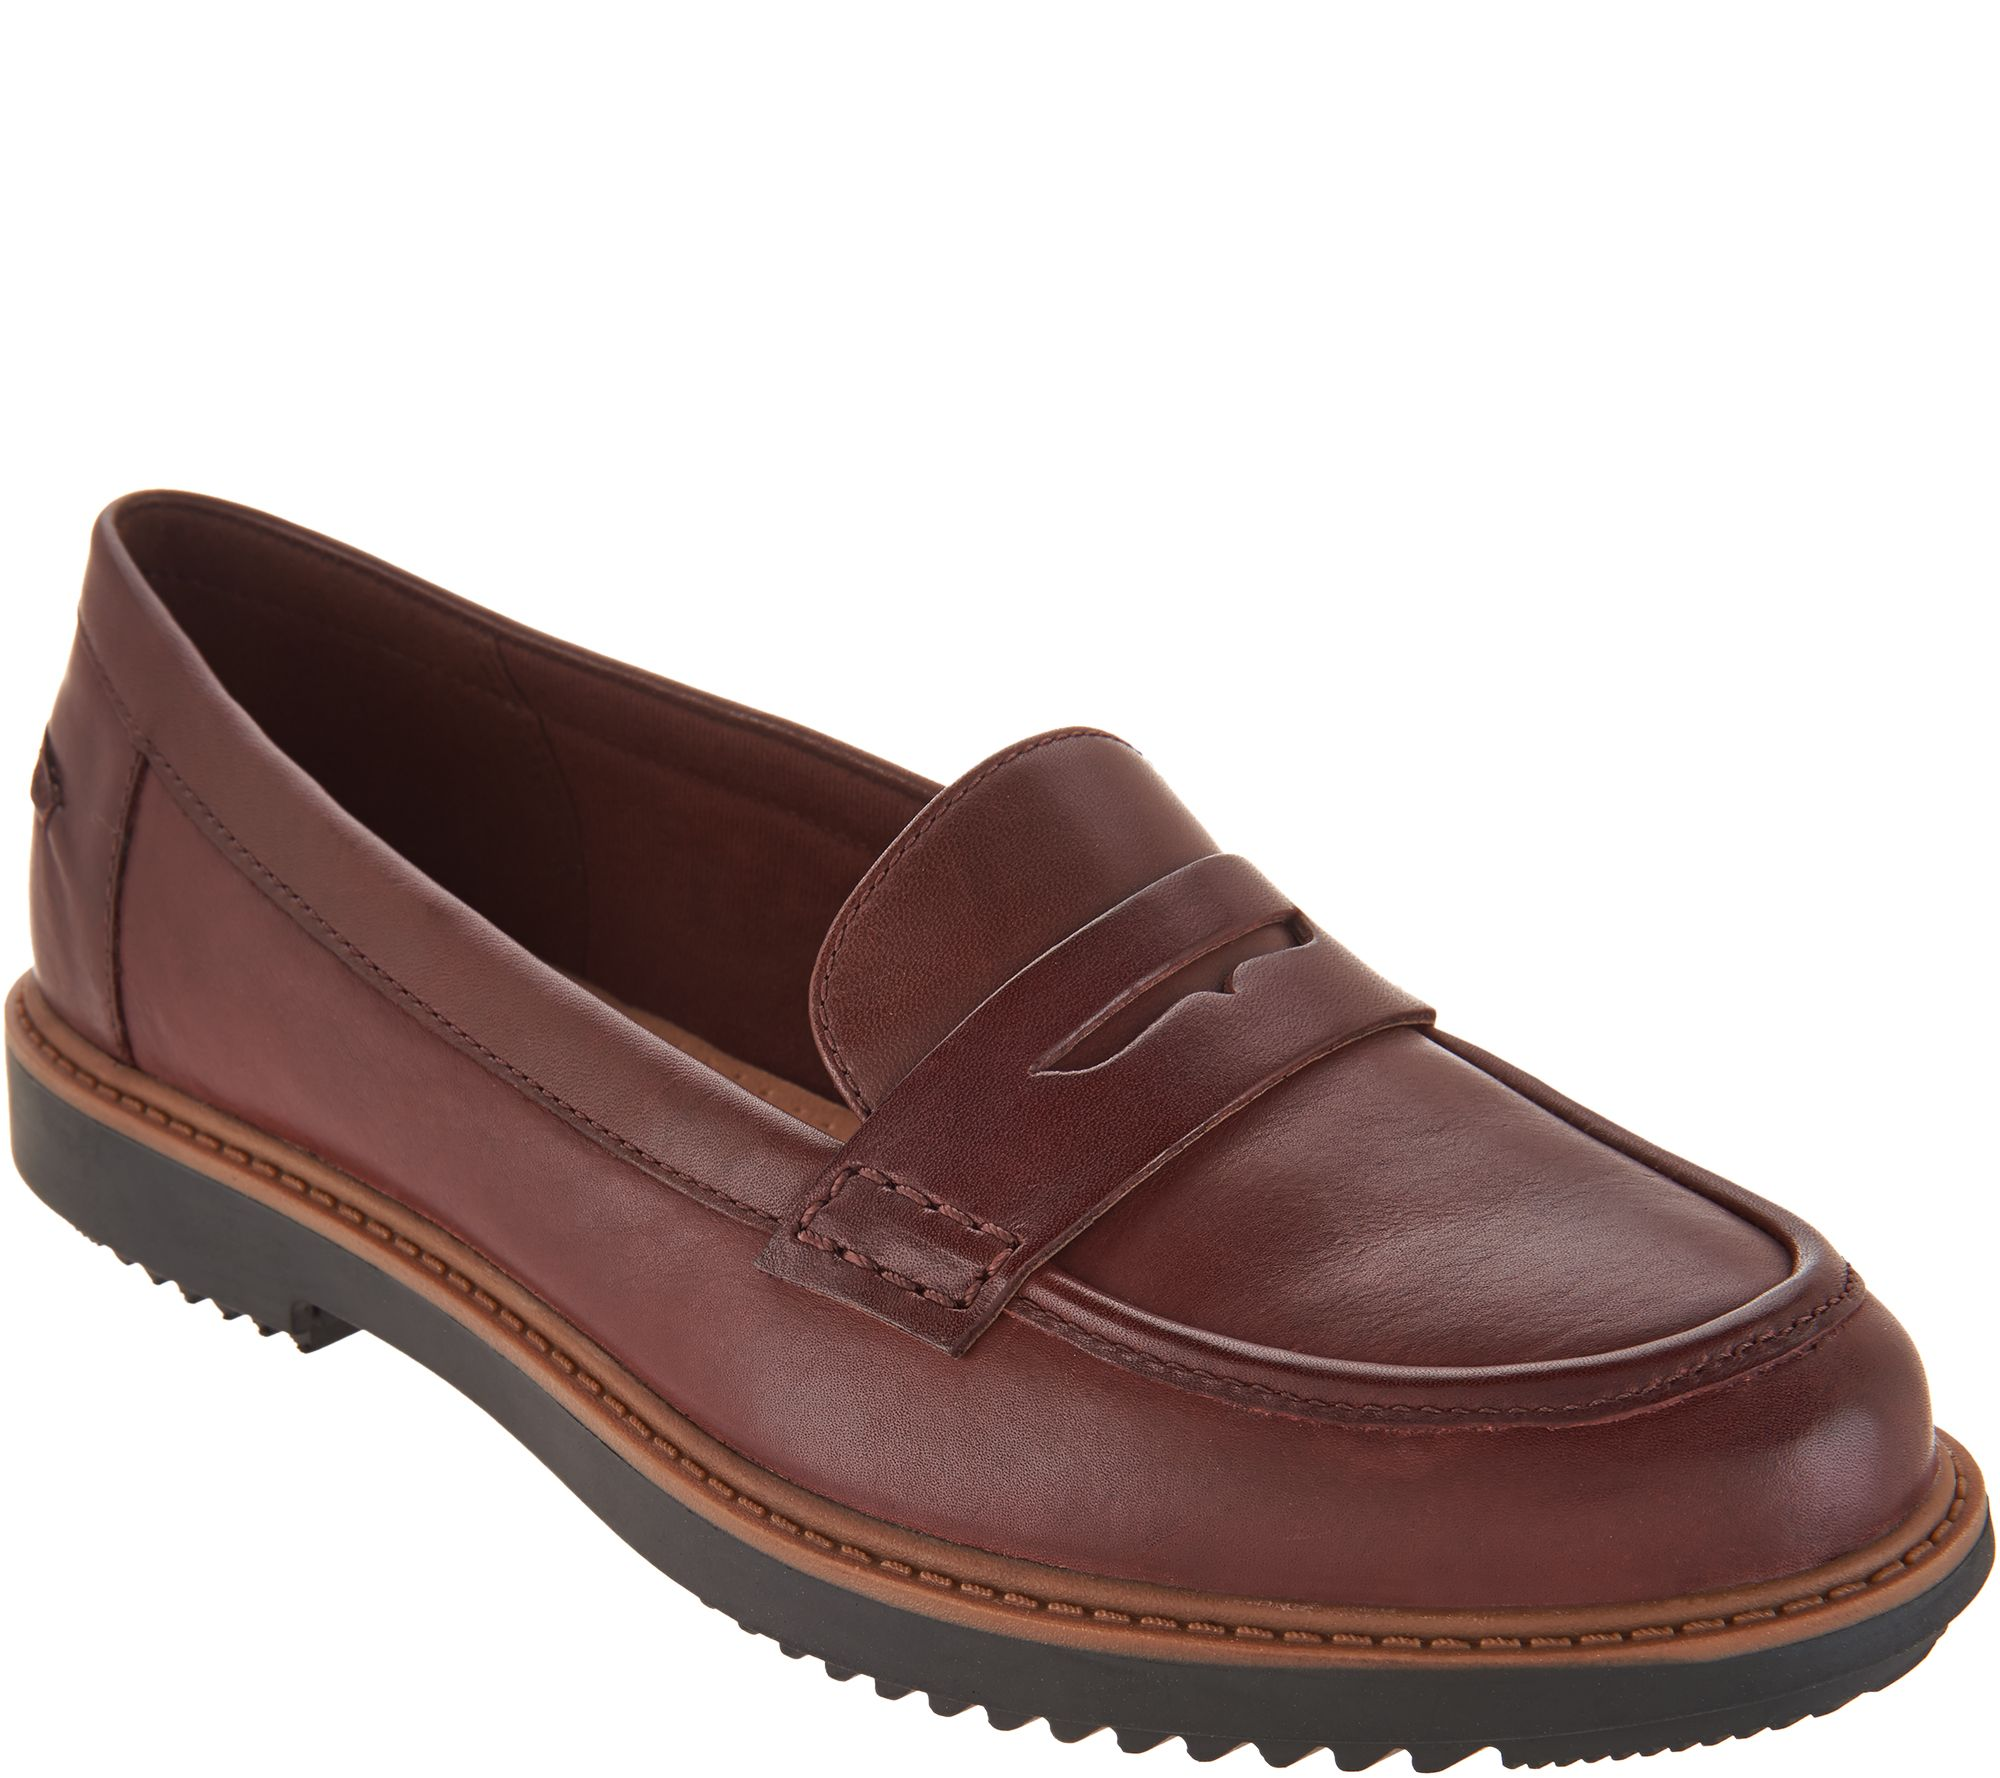 10c4fa25a22 Clarks Leather Slip-on Loafers - Raisie Eletta - Page 1 — QVC.com